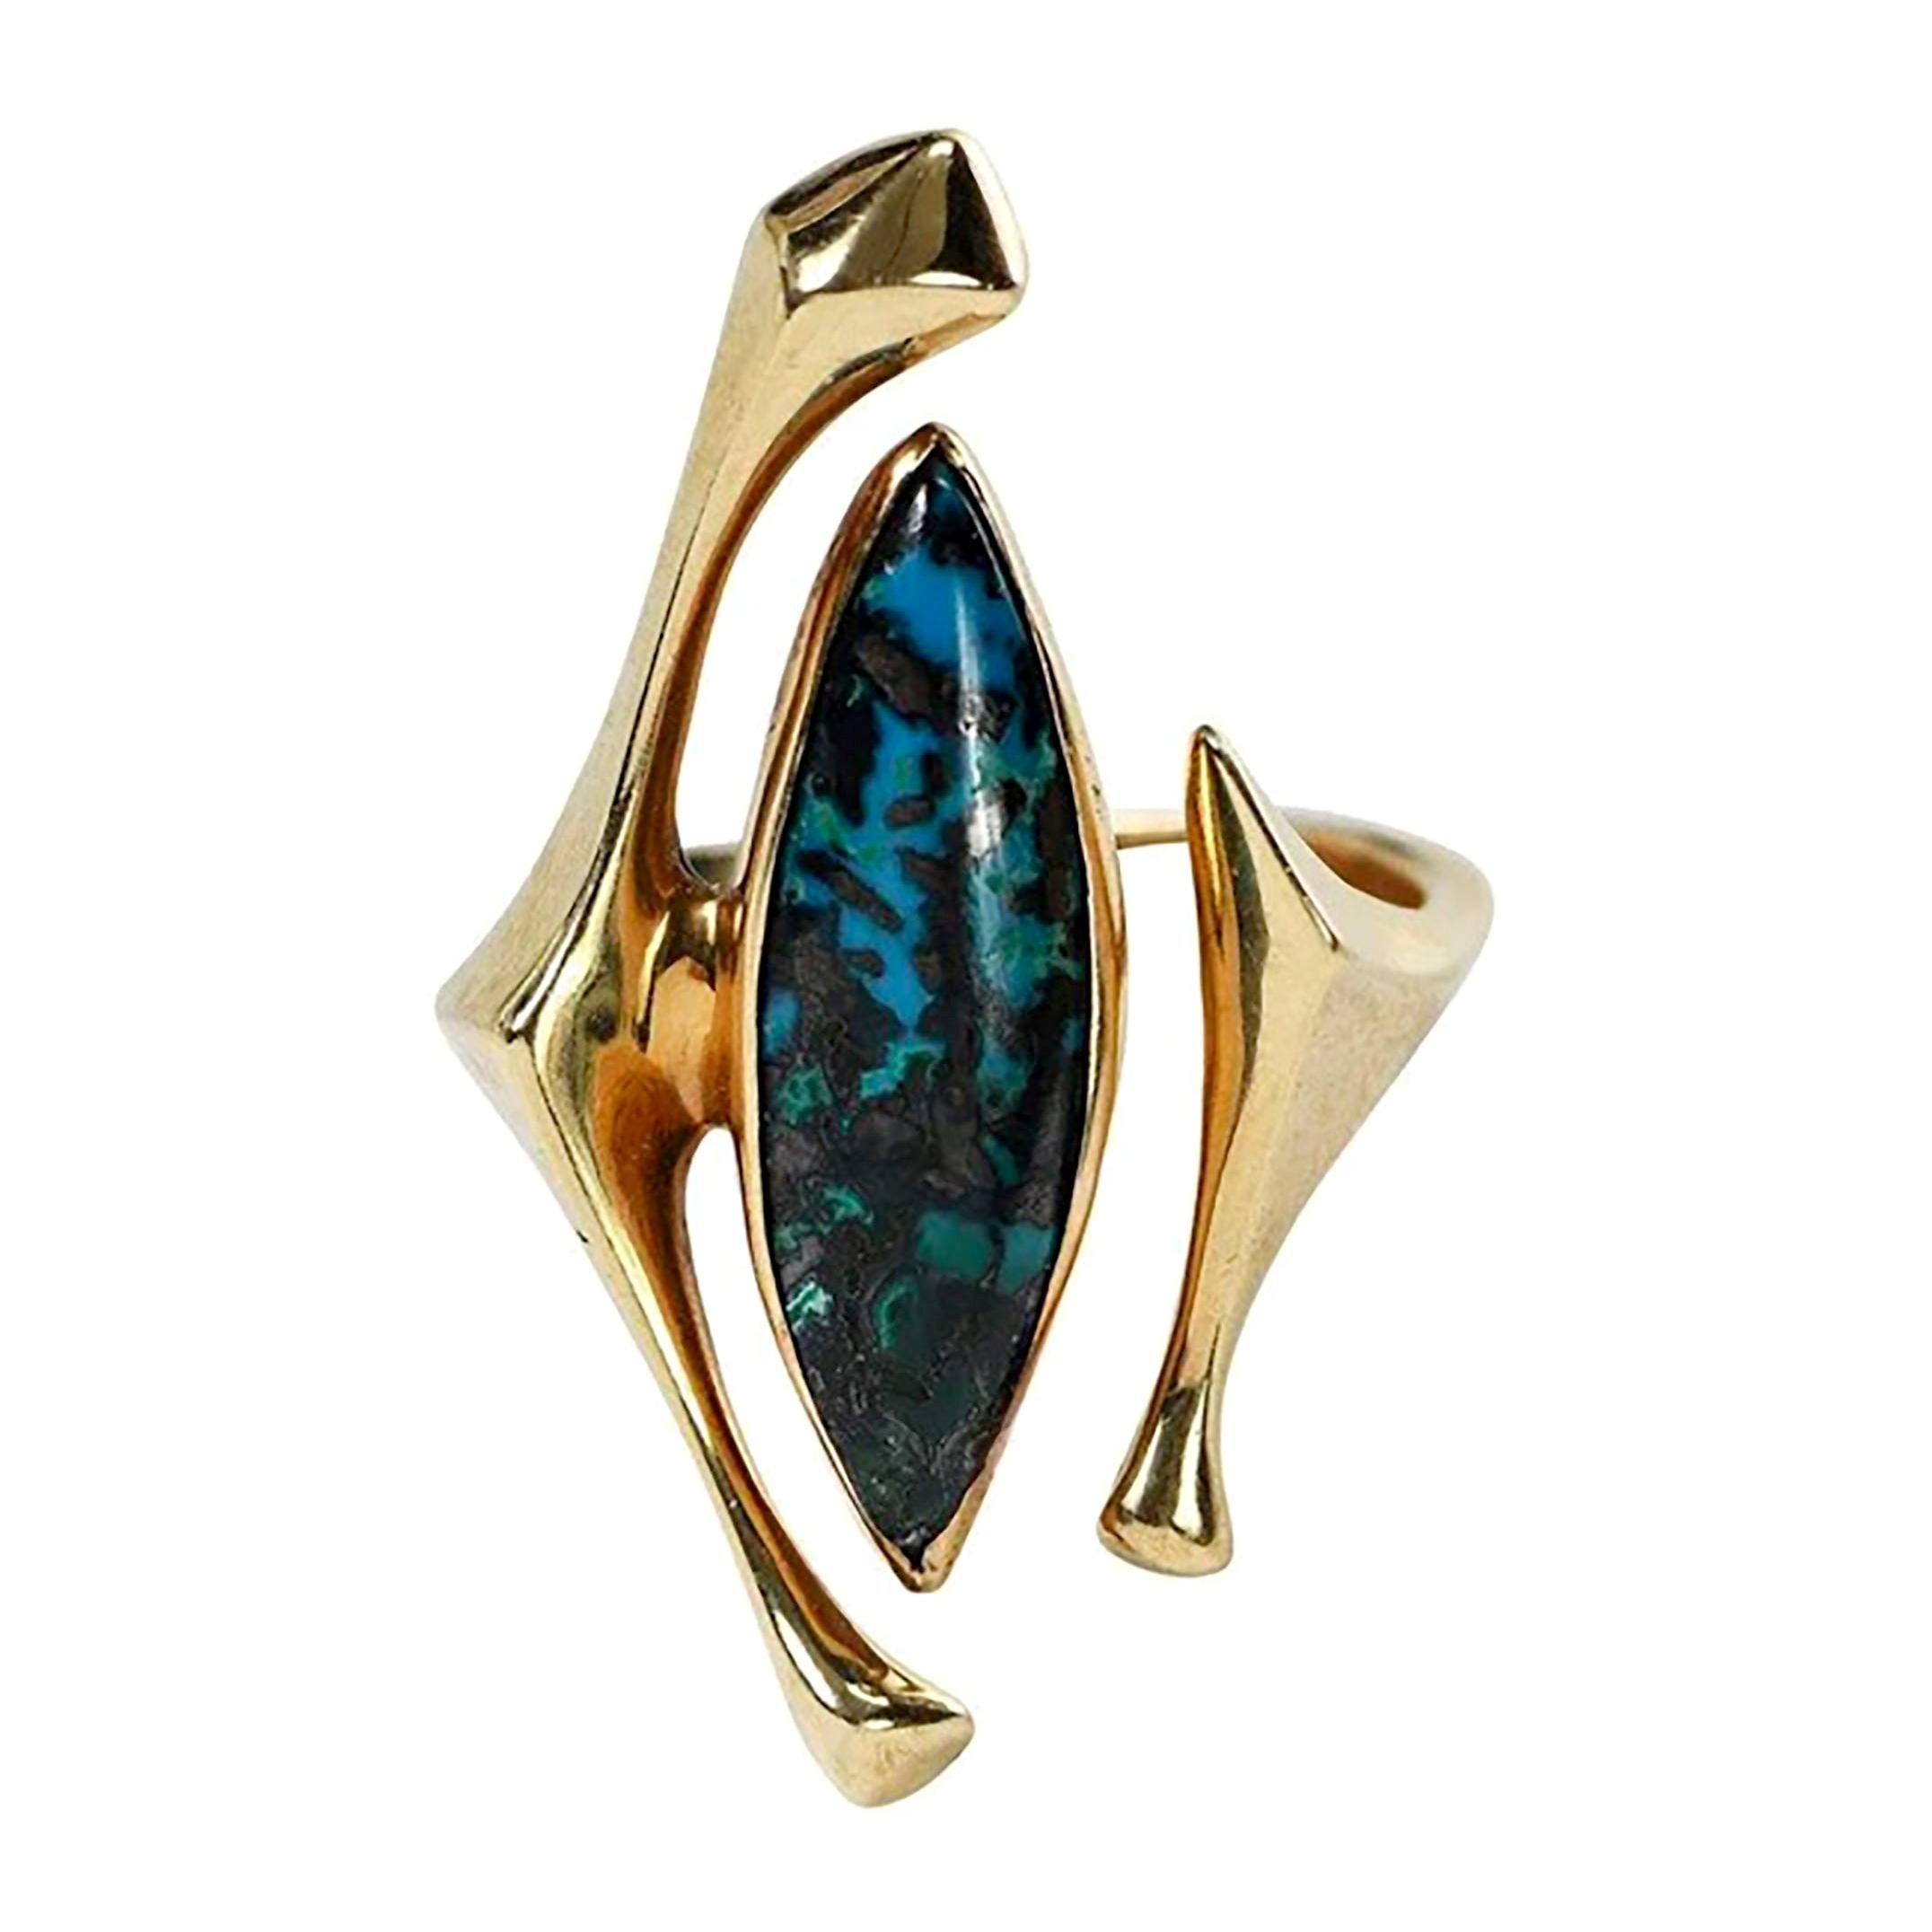 18K Yellow Gold Turquoise American Modernist Ring